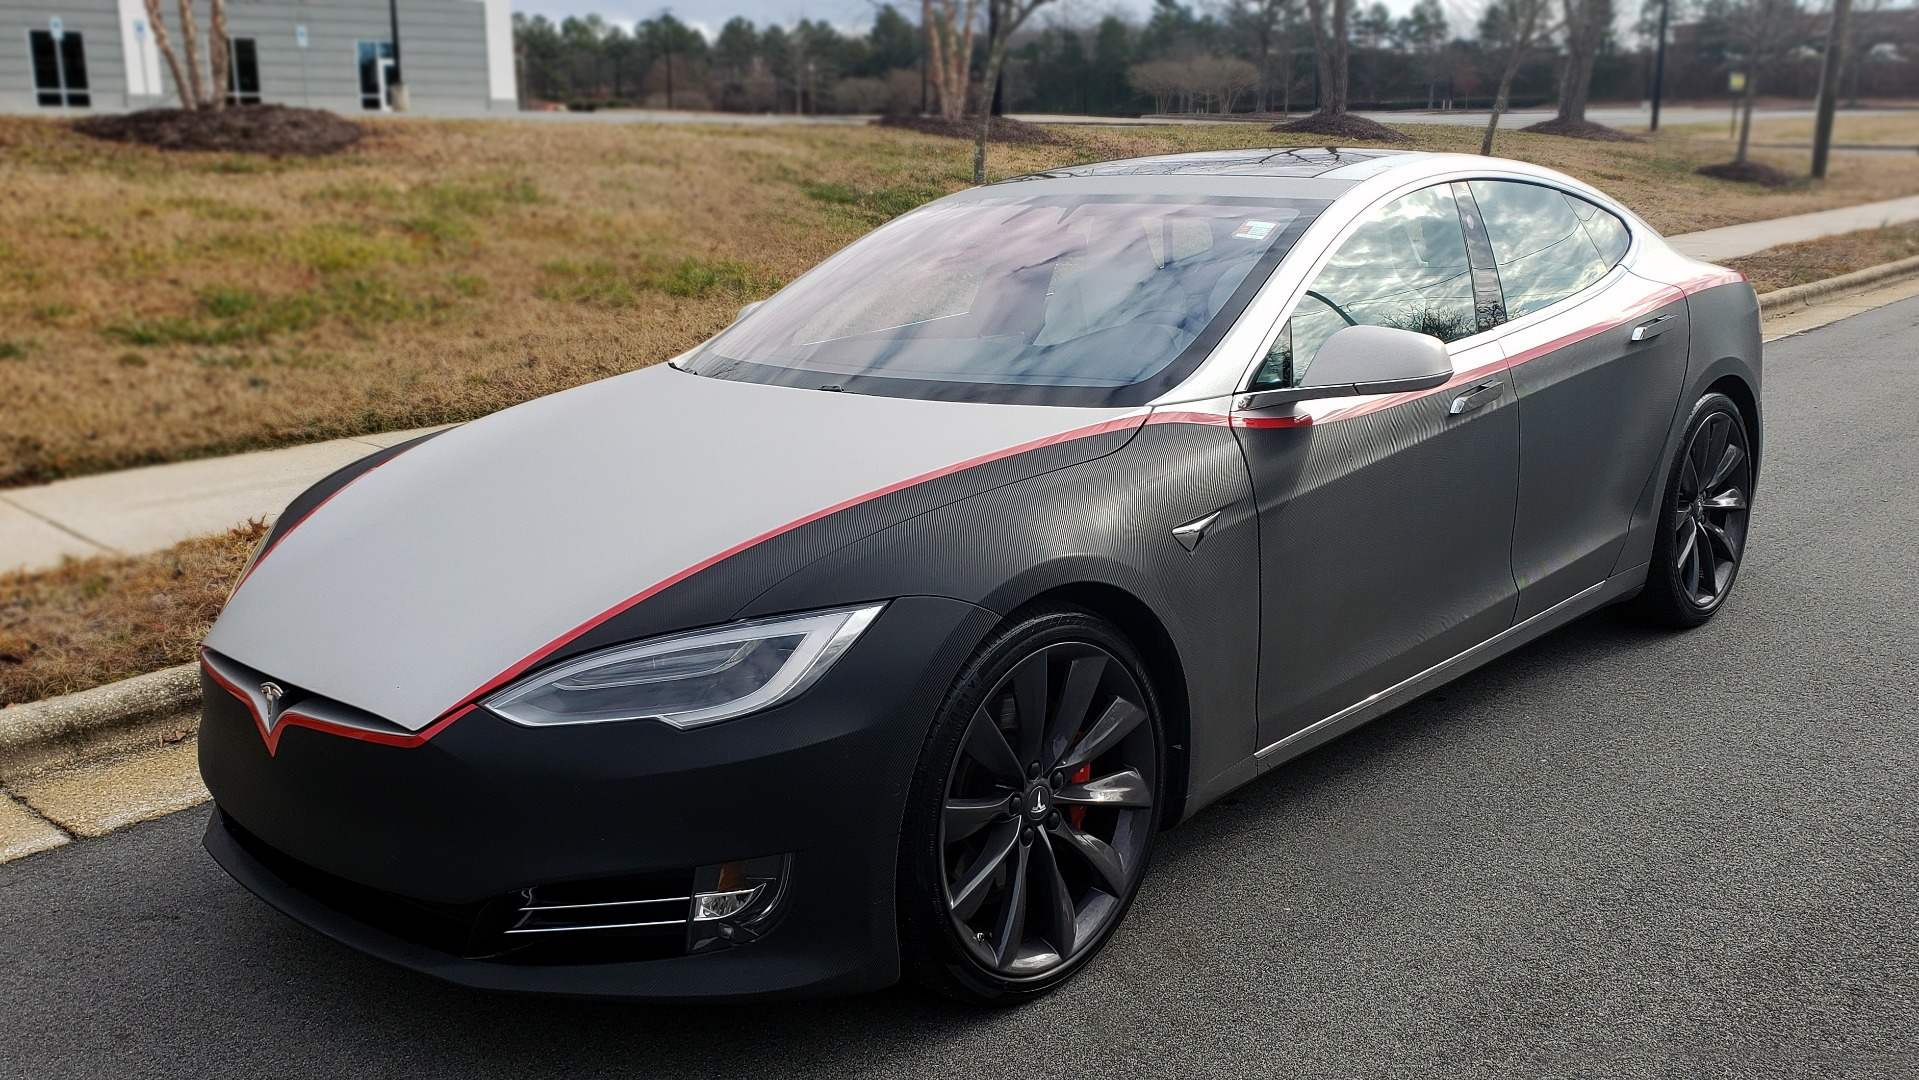 Used 2017 Tesla MODEL S P100D LUDICROUS PERF / PREM / TECH / AUTO PILOT for sale Sold at Formula Imports in Charlotte NC 28227 1